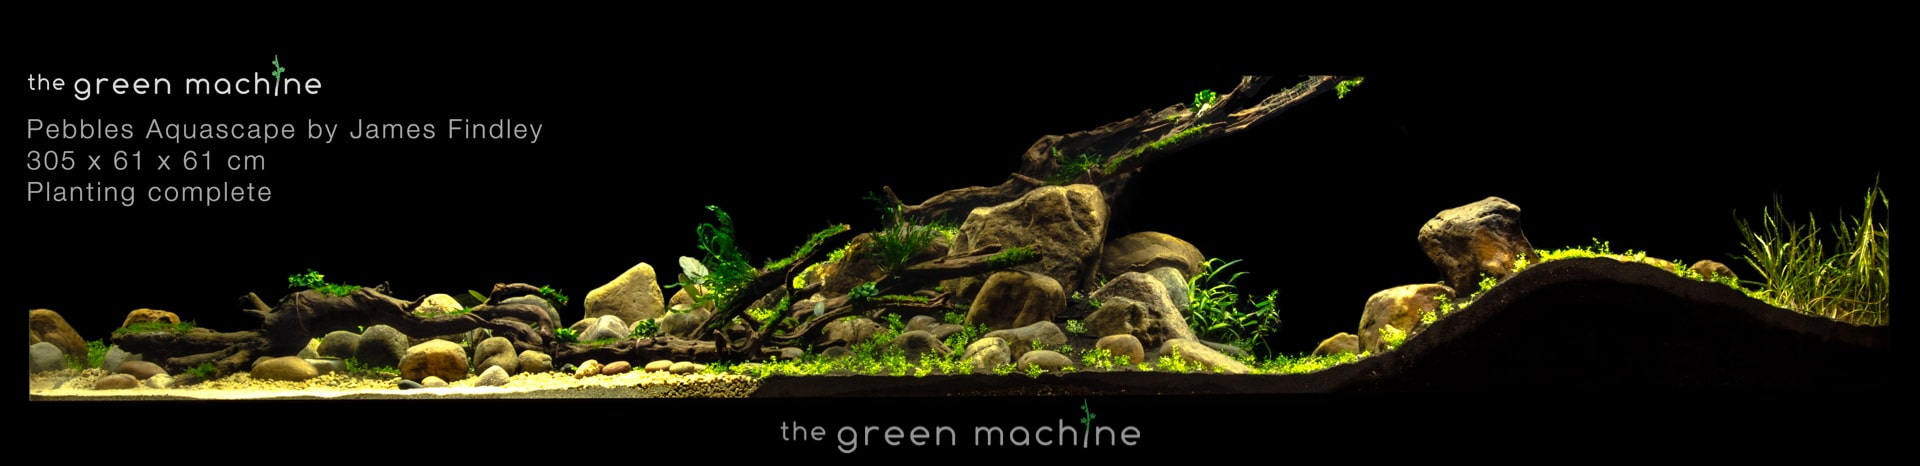 Aquascape By James Findley Pebbles In The Footsteps Of A Giant Aquascape Art The Green Machine